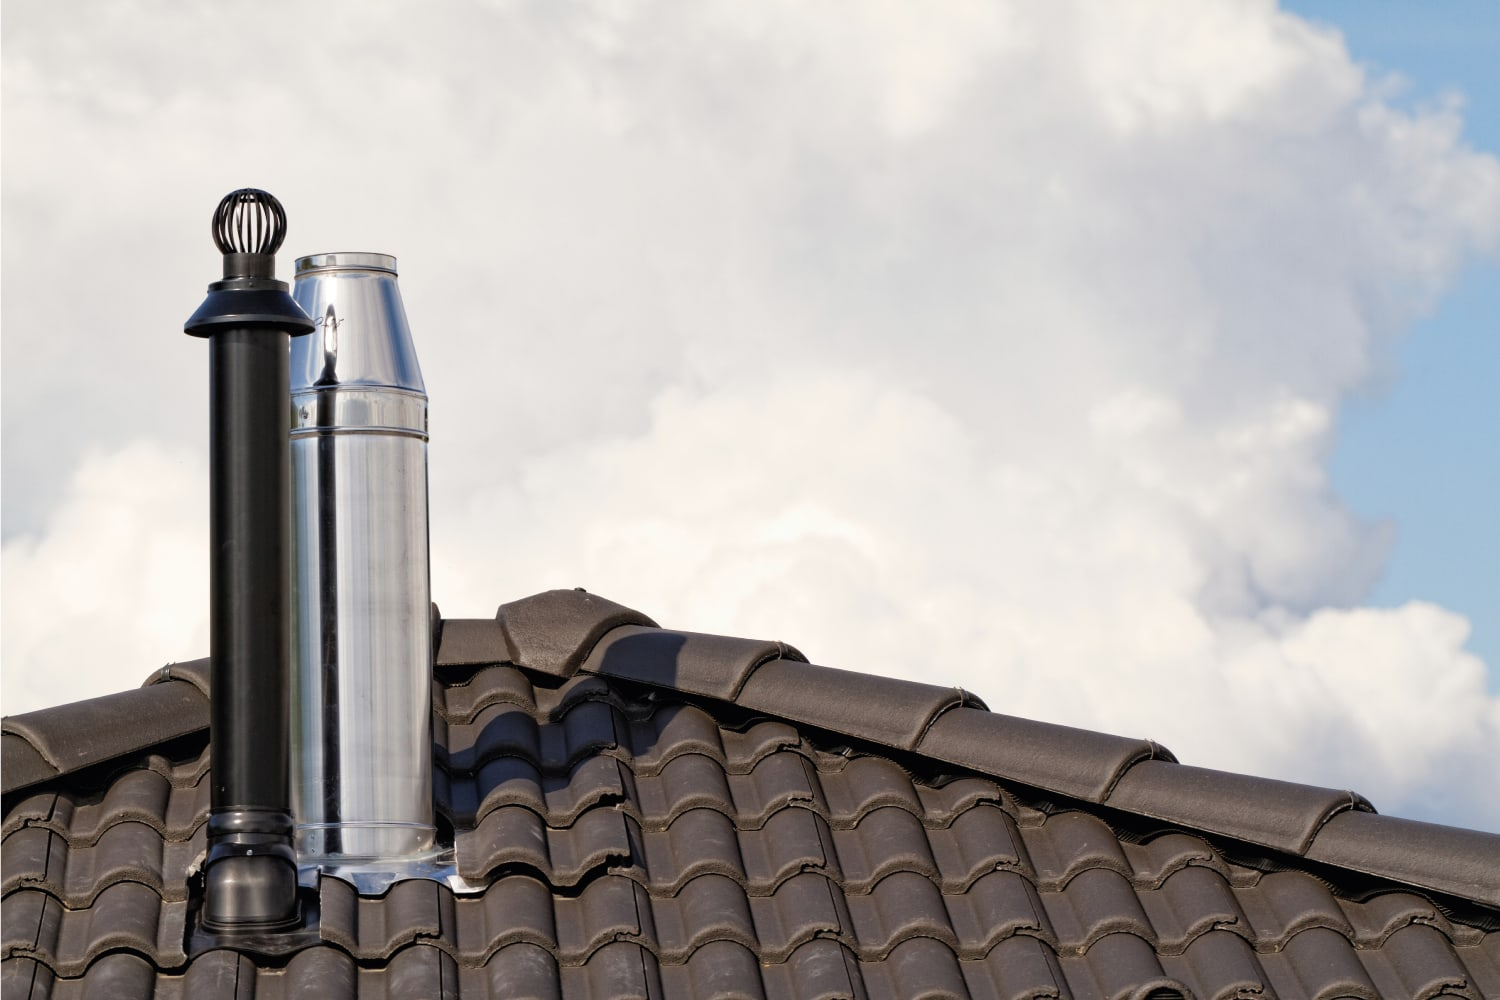 Modern draft increasing chimney cap on top of a house roof